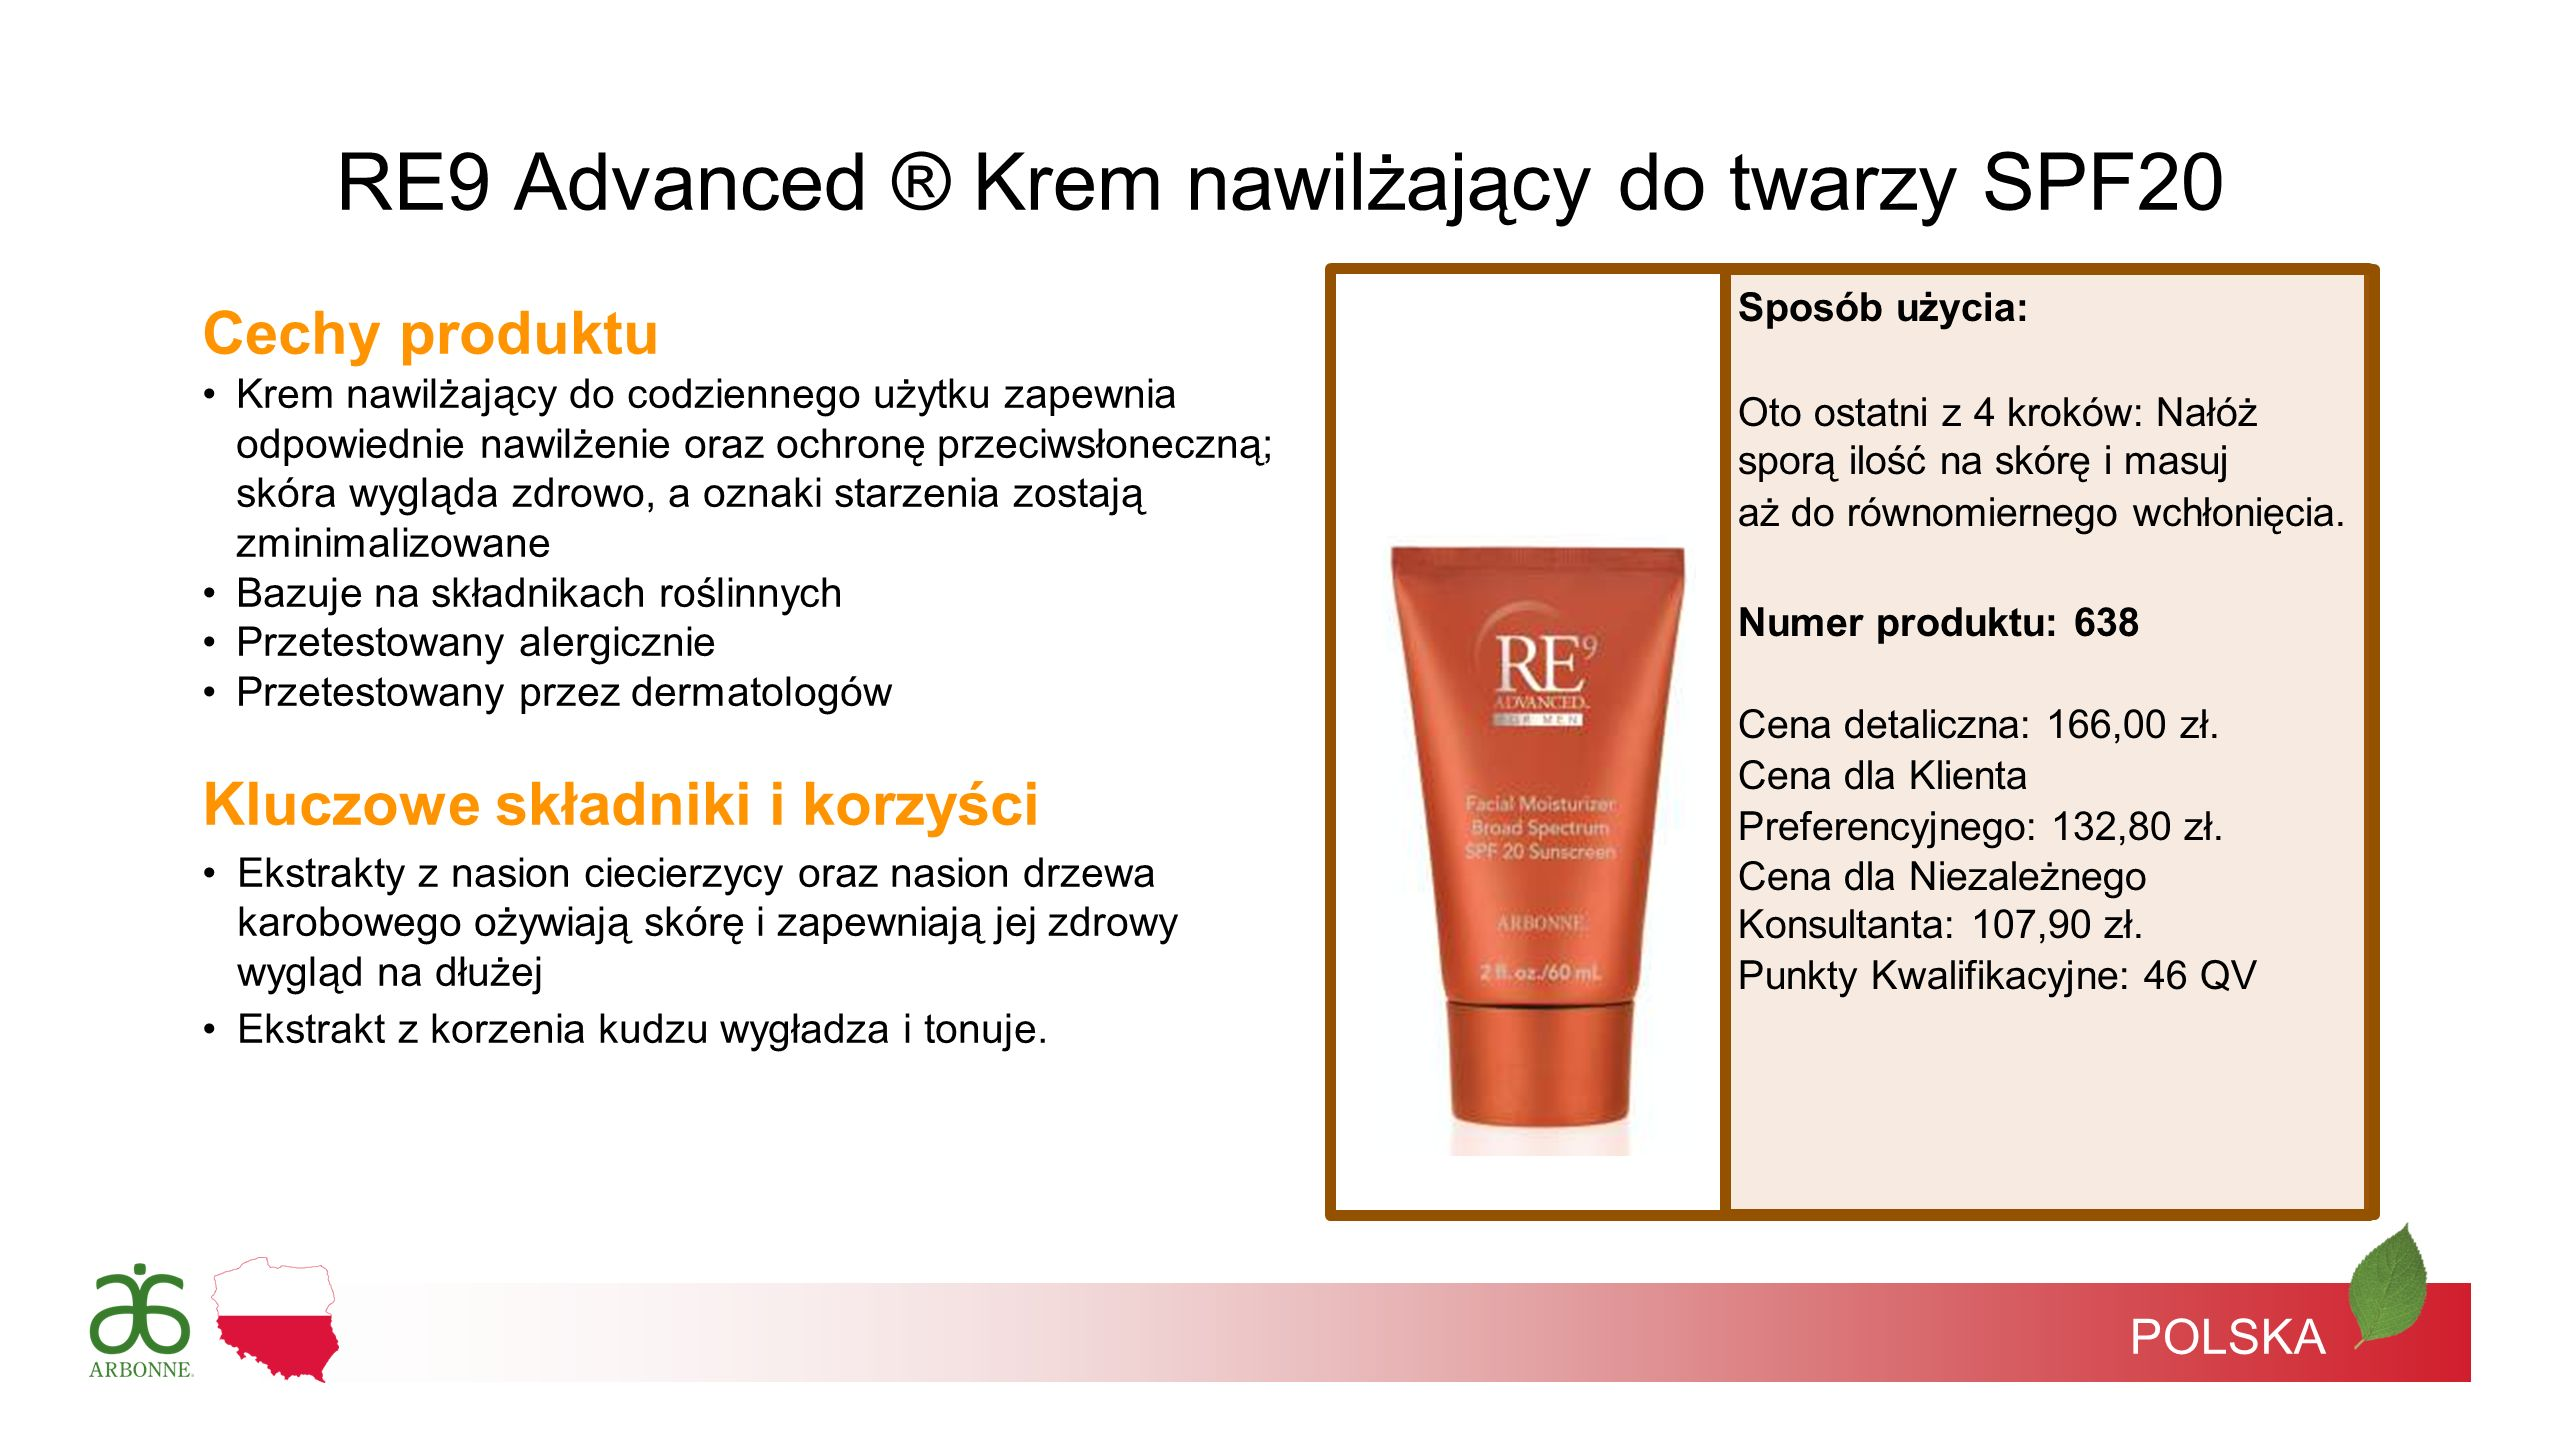 RE9 Advanced ® Krem nawilżający do twarzy SPF20